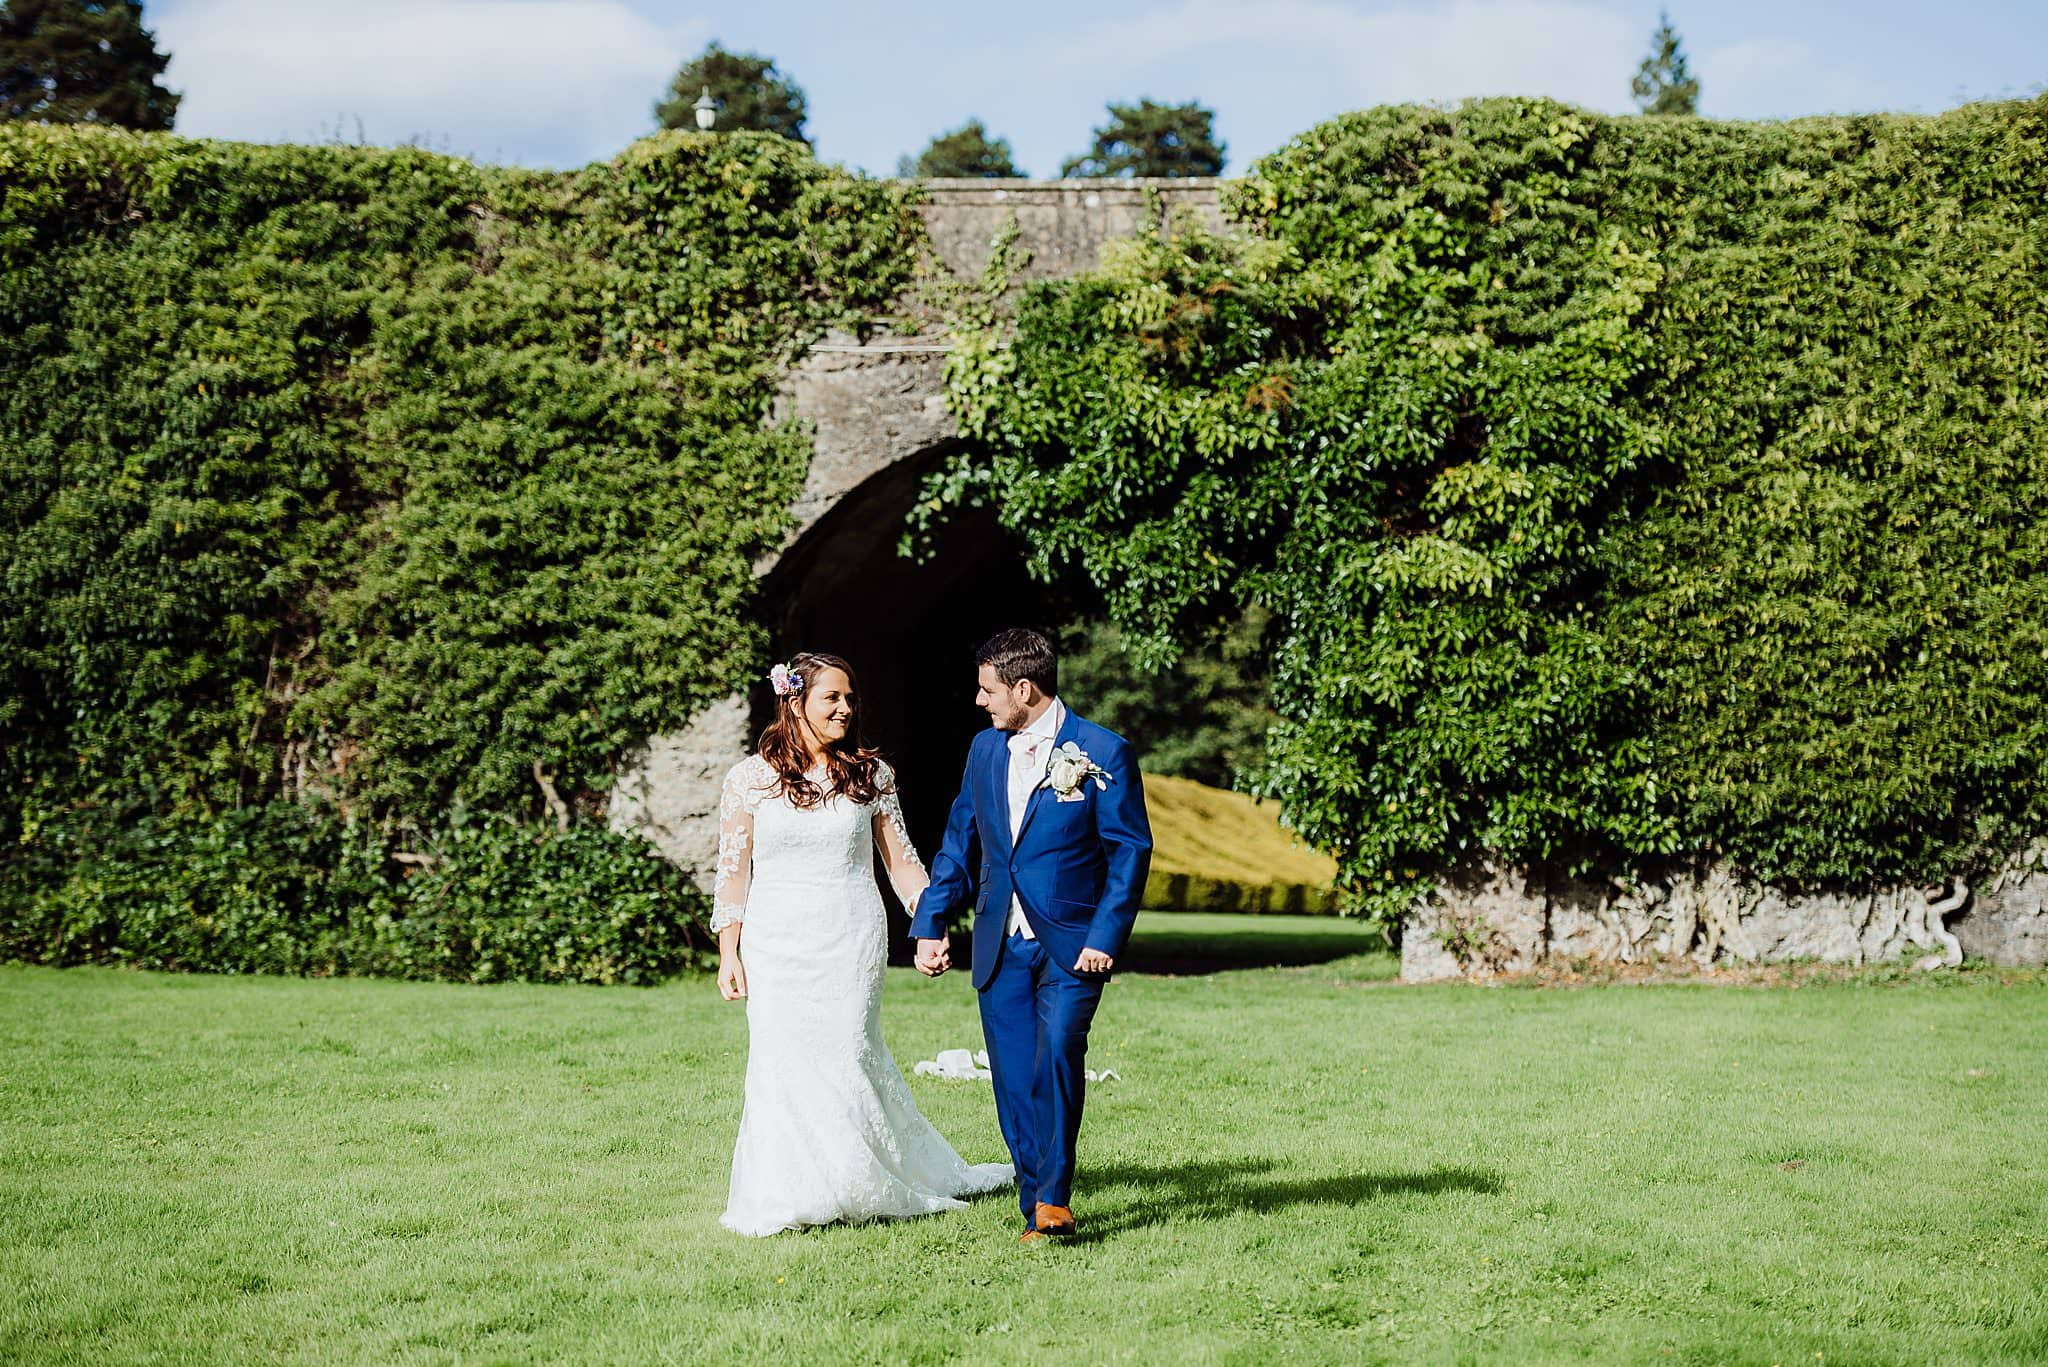 Bide and groom walk hand in hand staring at each other in the garden of Gregnog Hall wedding venue